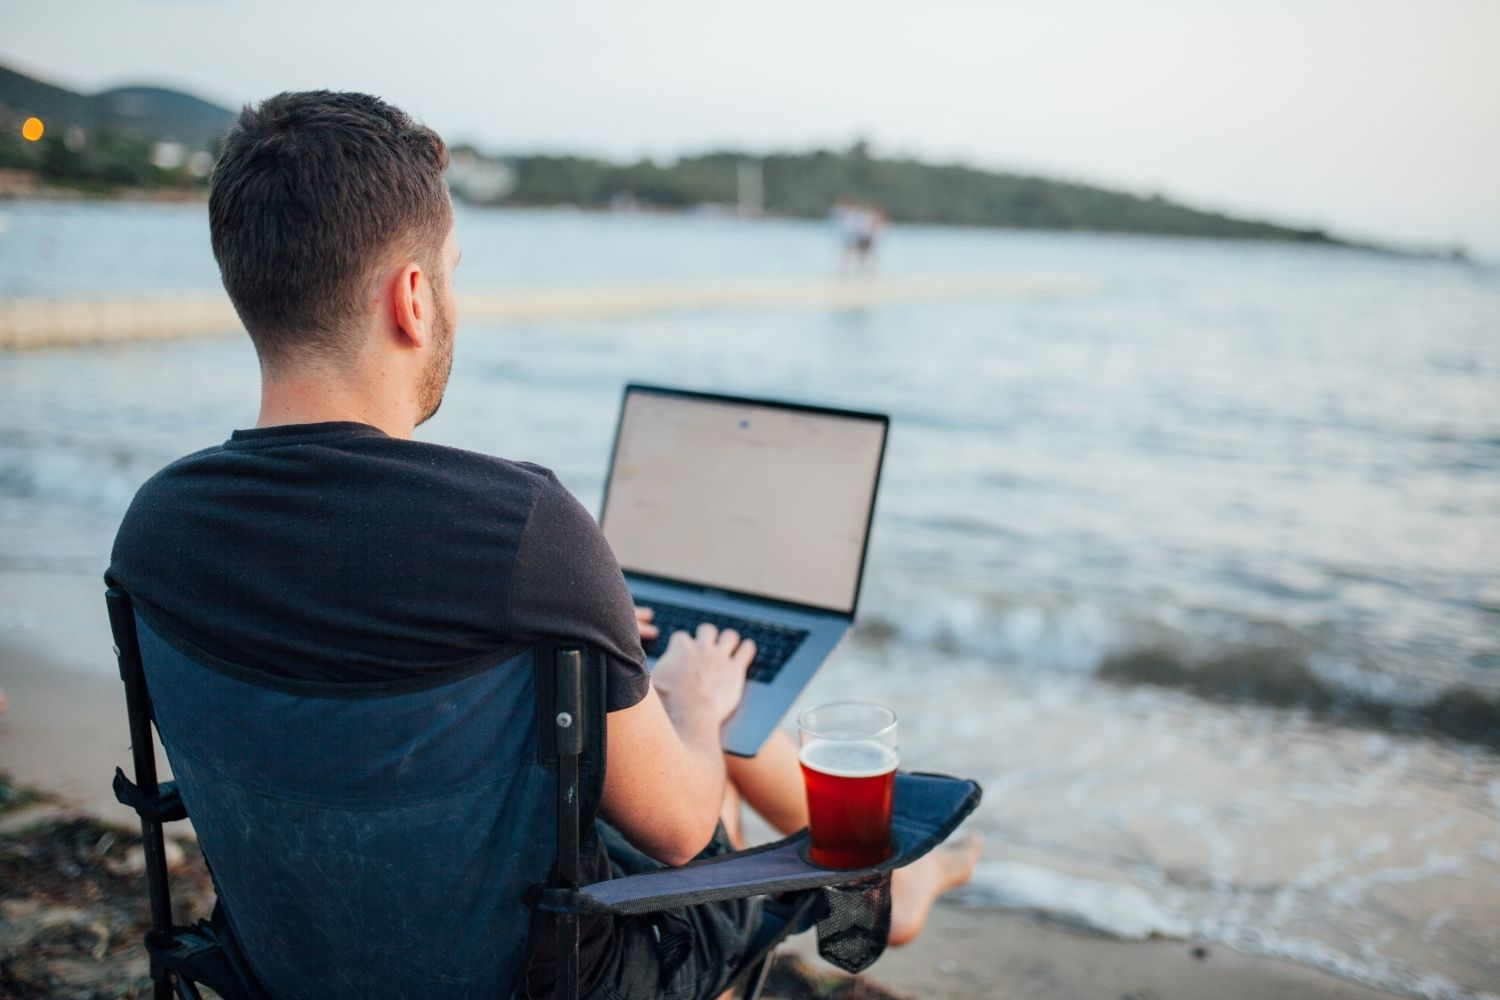 How To Start Working Remotely Even If You Don't Have Any Experience 11